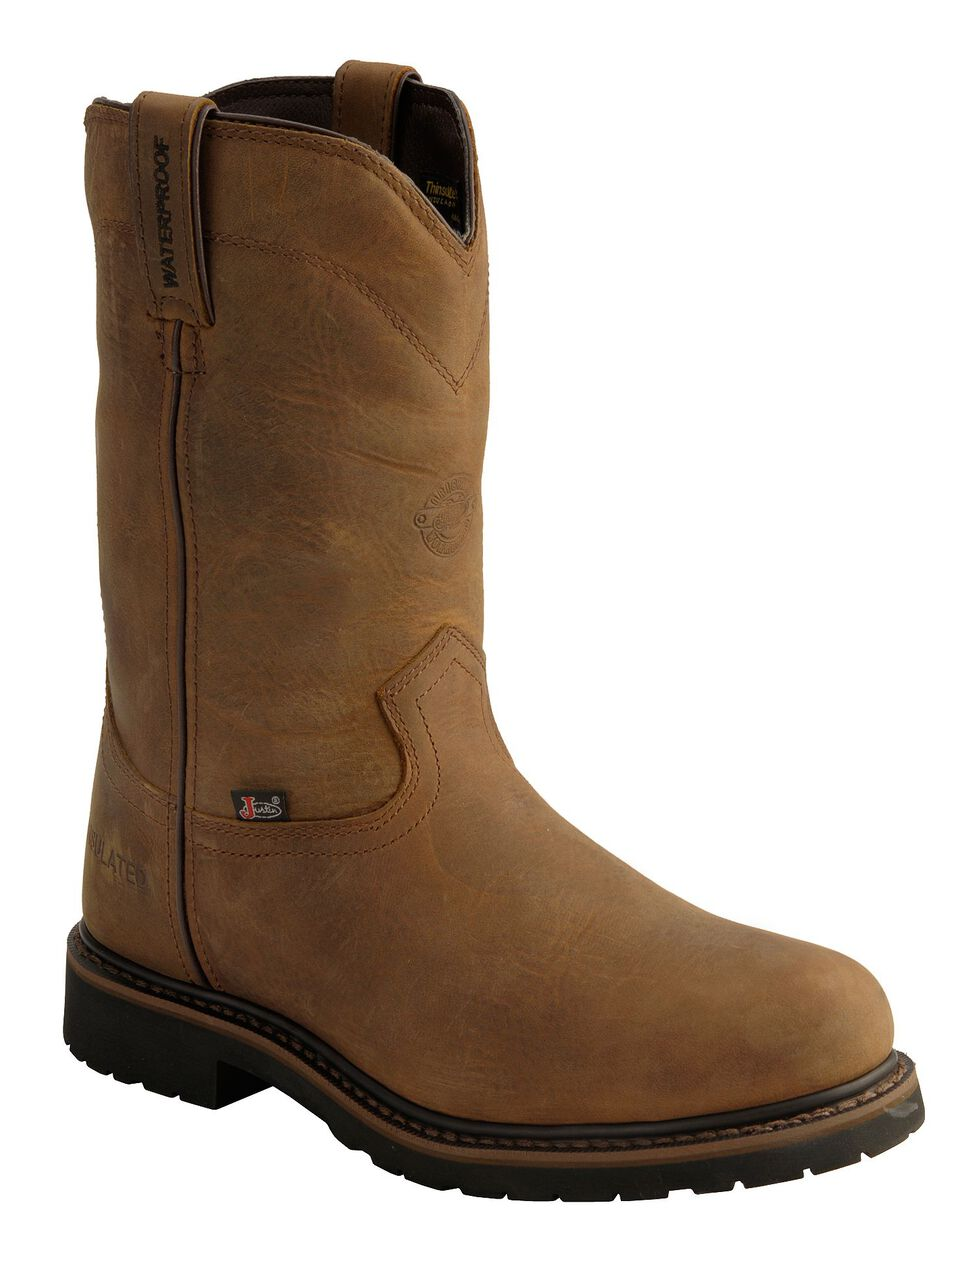 Justin Men's Drywall Insulated Waterproof Work Boots - Steel Toe, Brown, hi-res